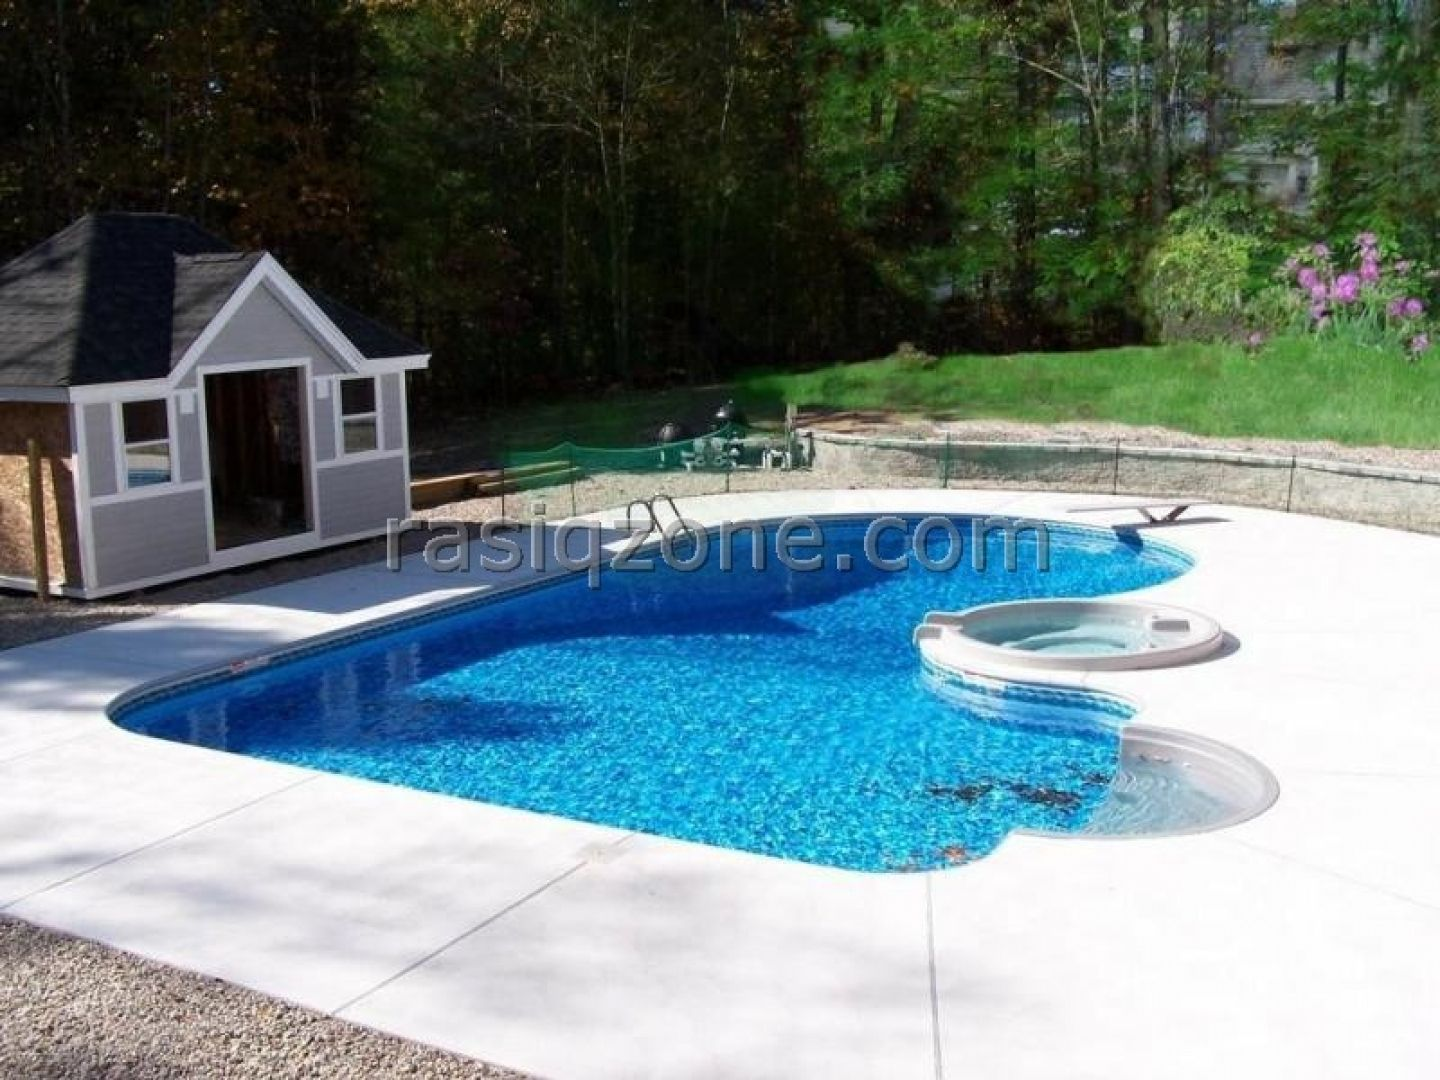 Inground pools kids will love pool designs backyard for Inground swimming pool plans